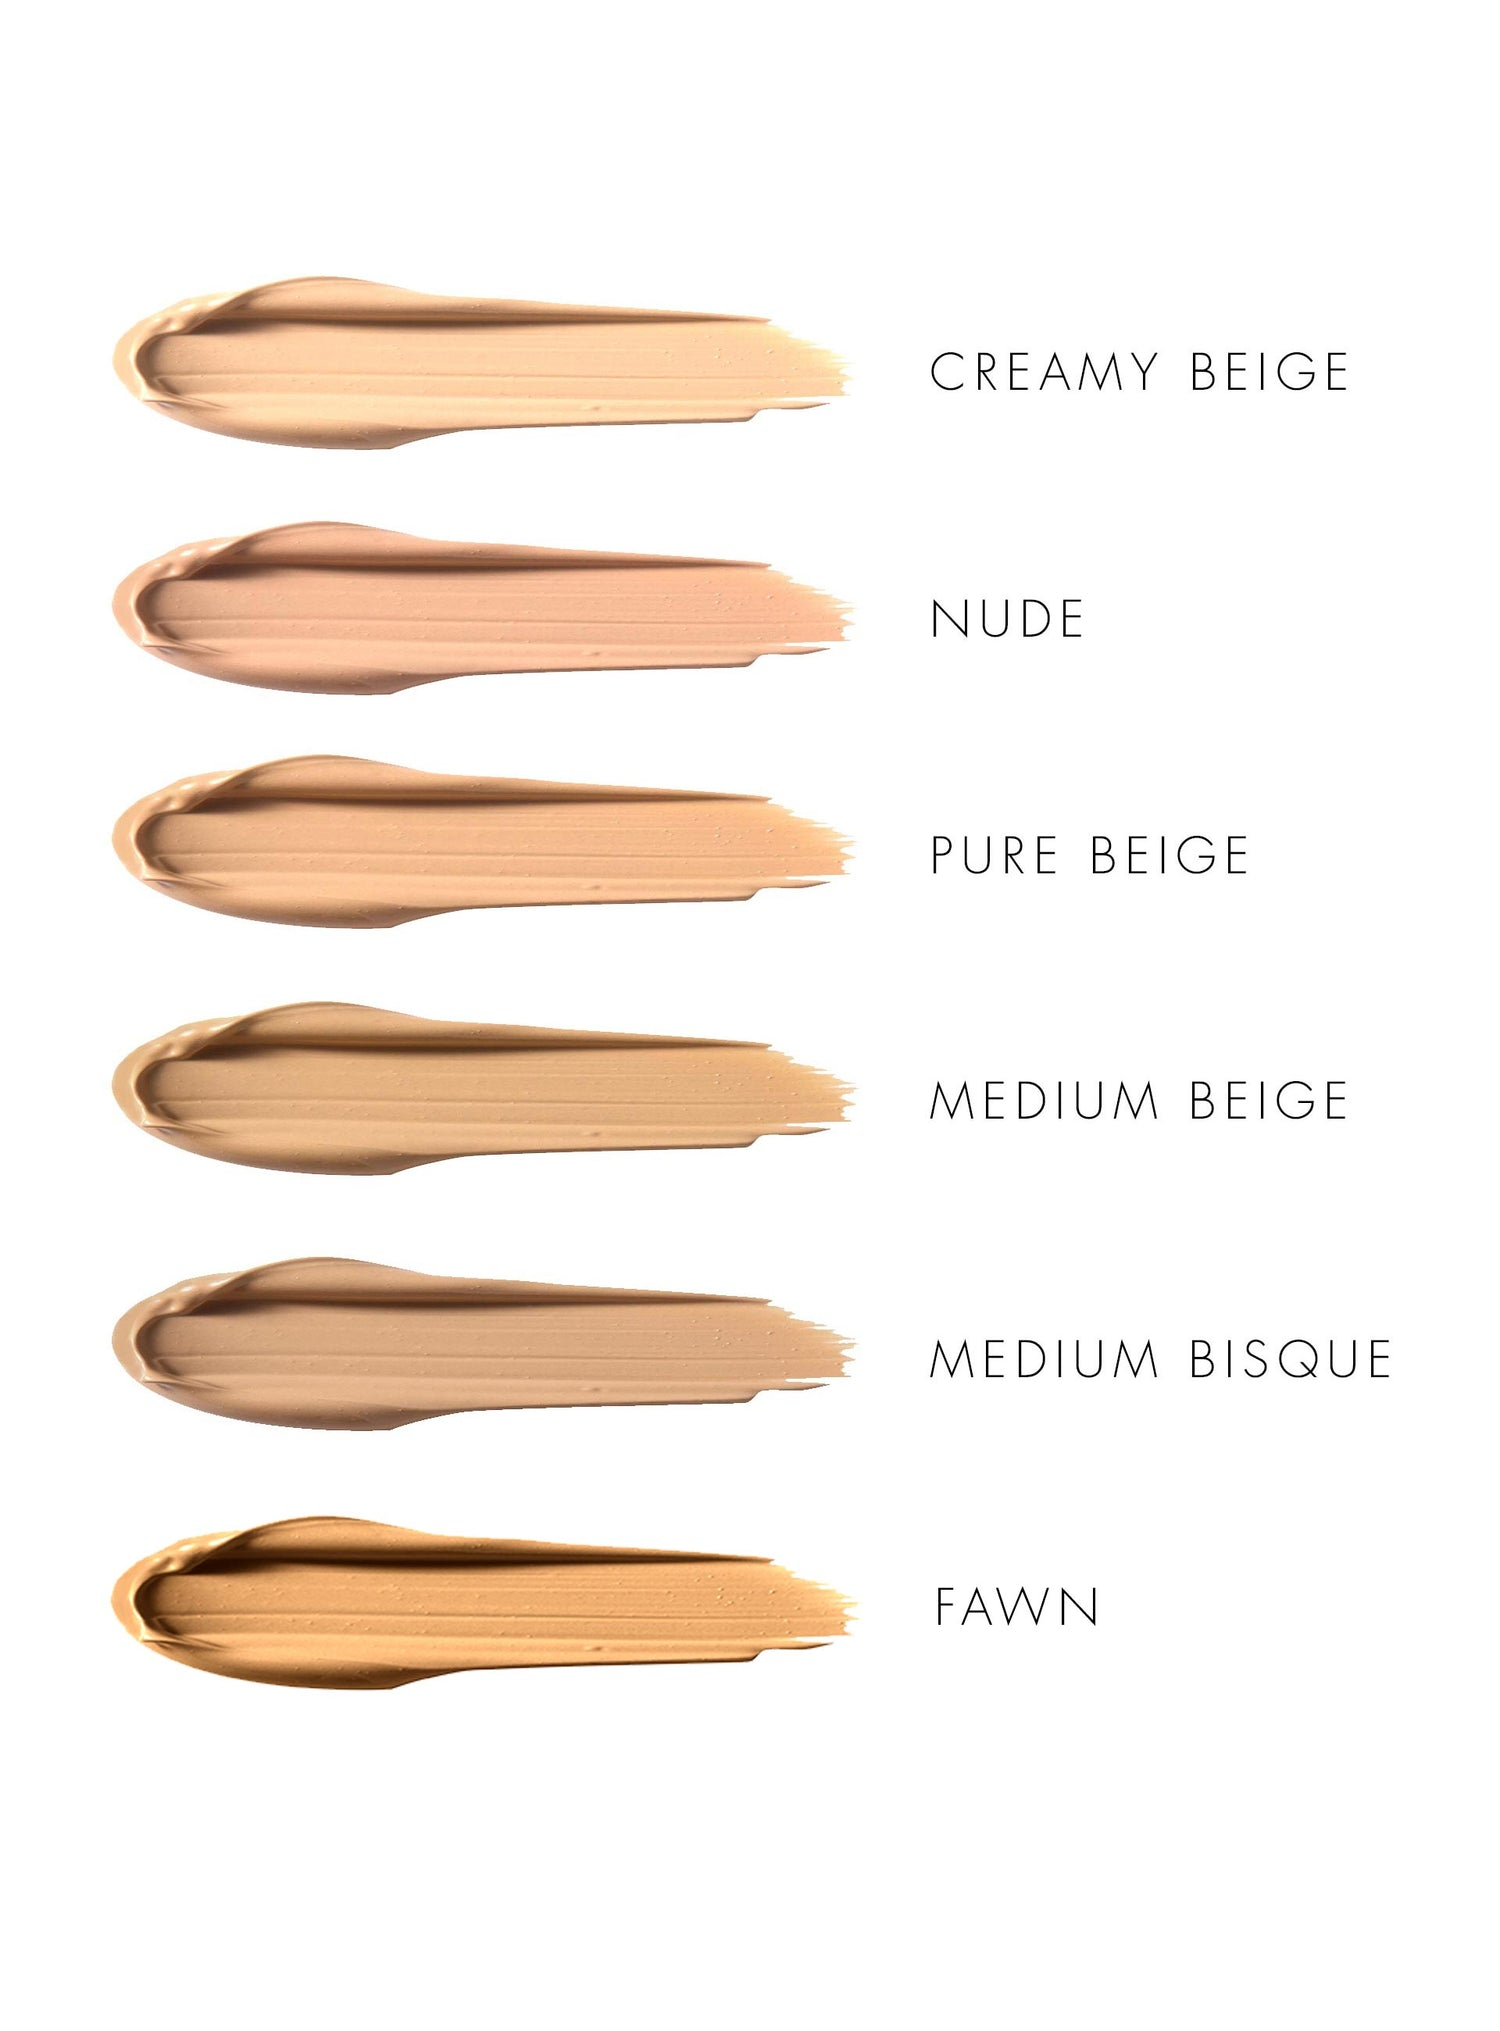 L.A. Girl HD PRO Concealer - Medium Shades Medium Bisque